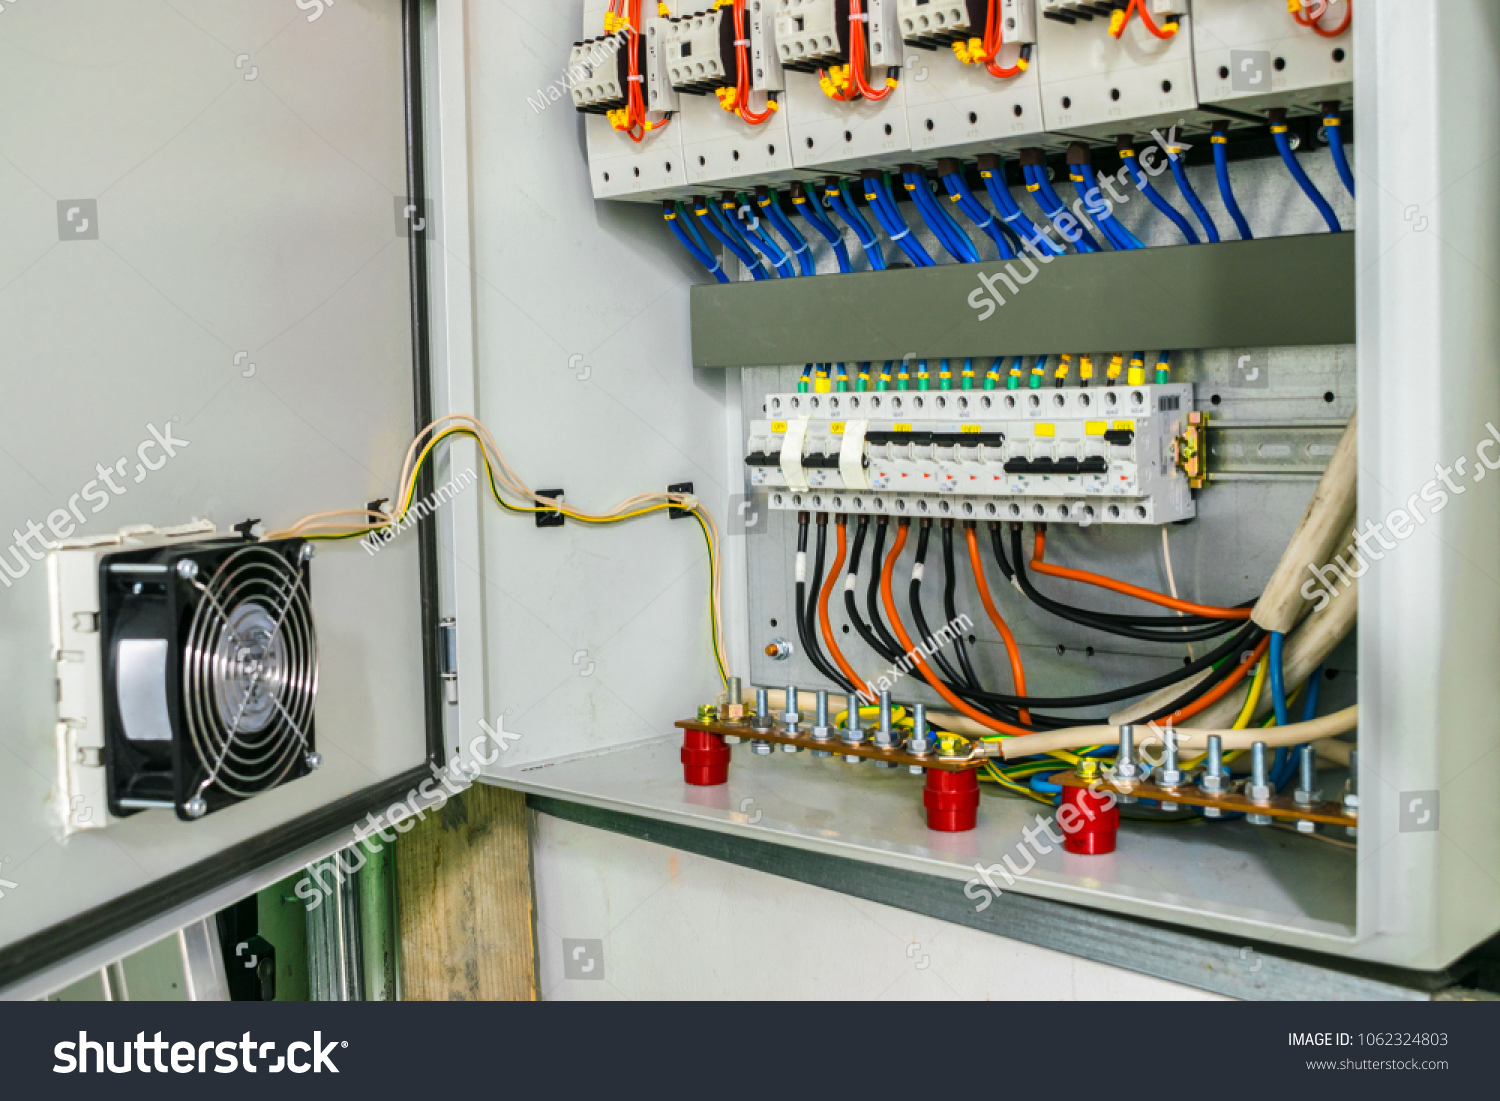 electric power circuit breakers fuse box stock photo (edit nowelectric power circuit breakers are in the fuse box the wires with the terminals are